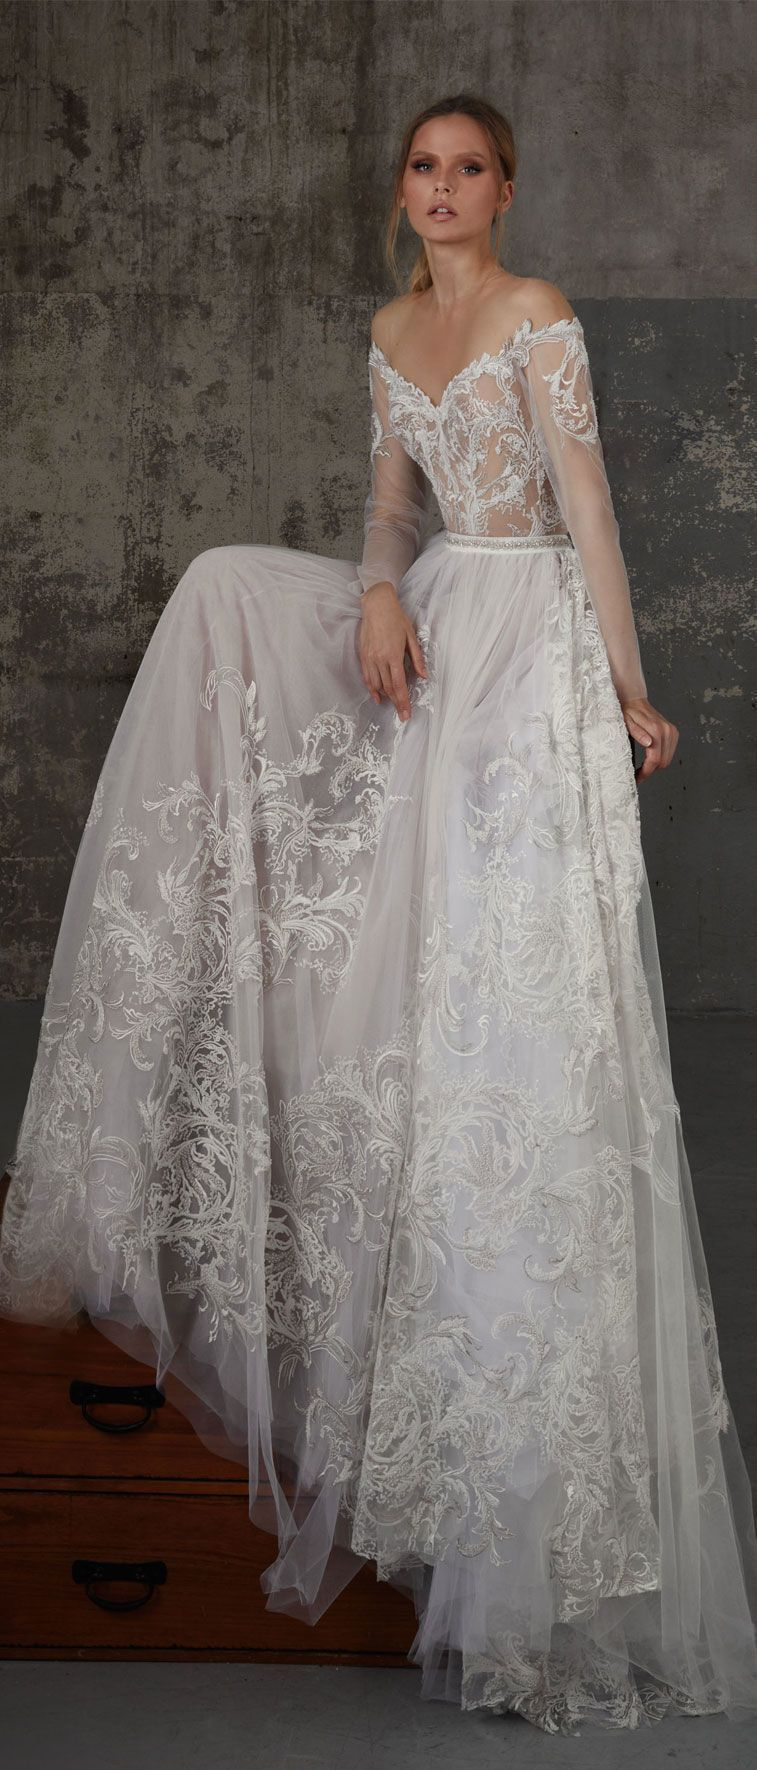 Casual hippie wedding dresses  Off the shoulder long sleeves wedding dress Boho wedding dress